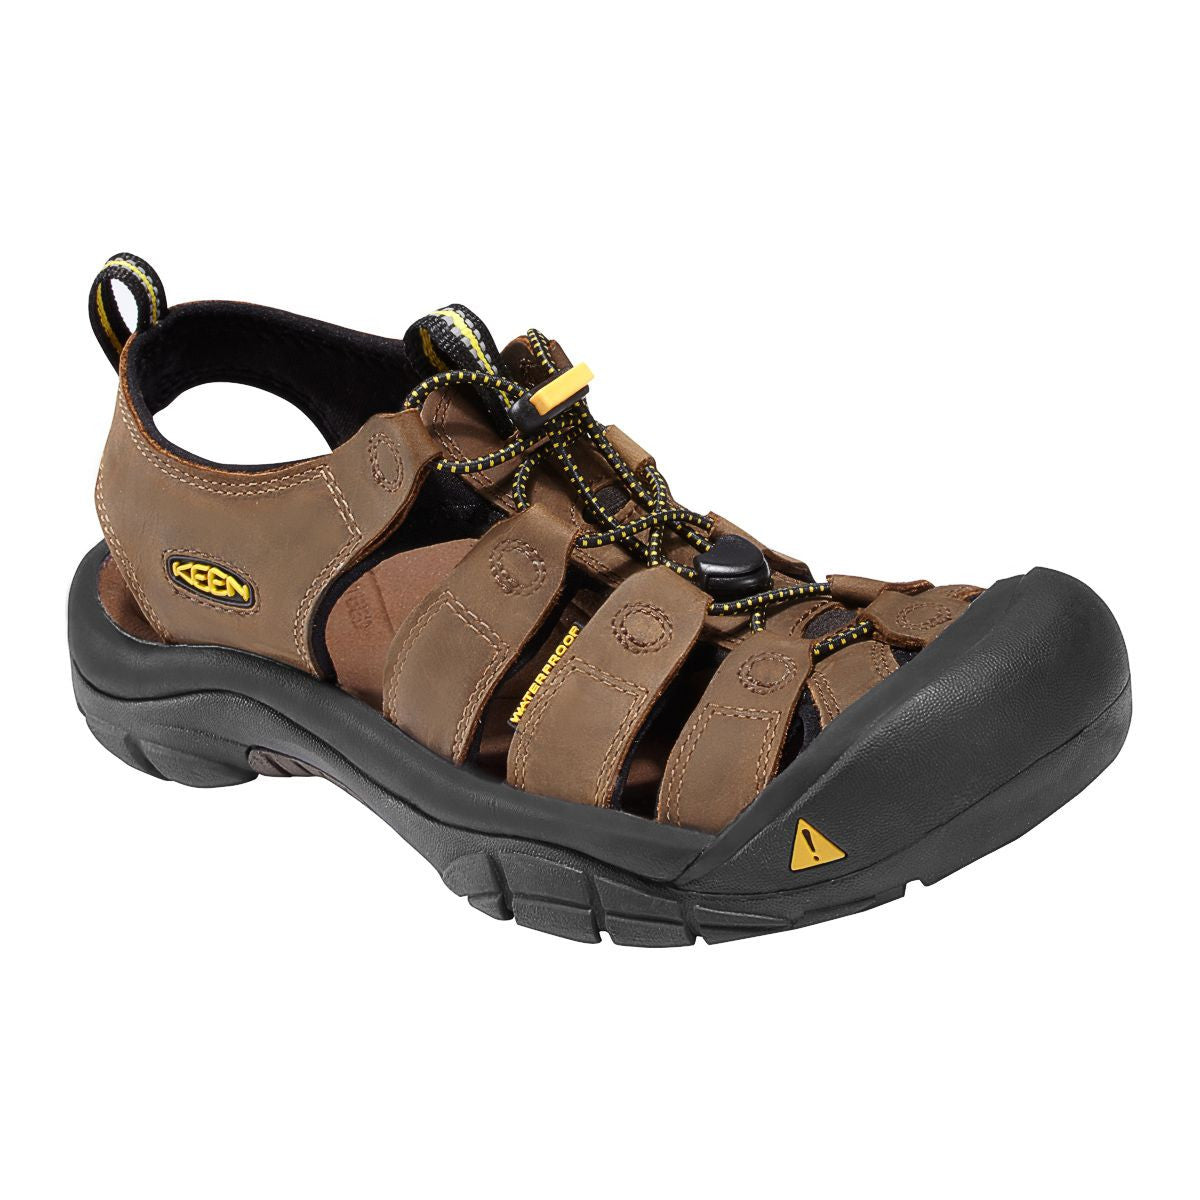 Keen Newport Sandal (Men's) - Bison - Find Your Feet Australia Hobart Launceston Tasmania